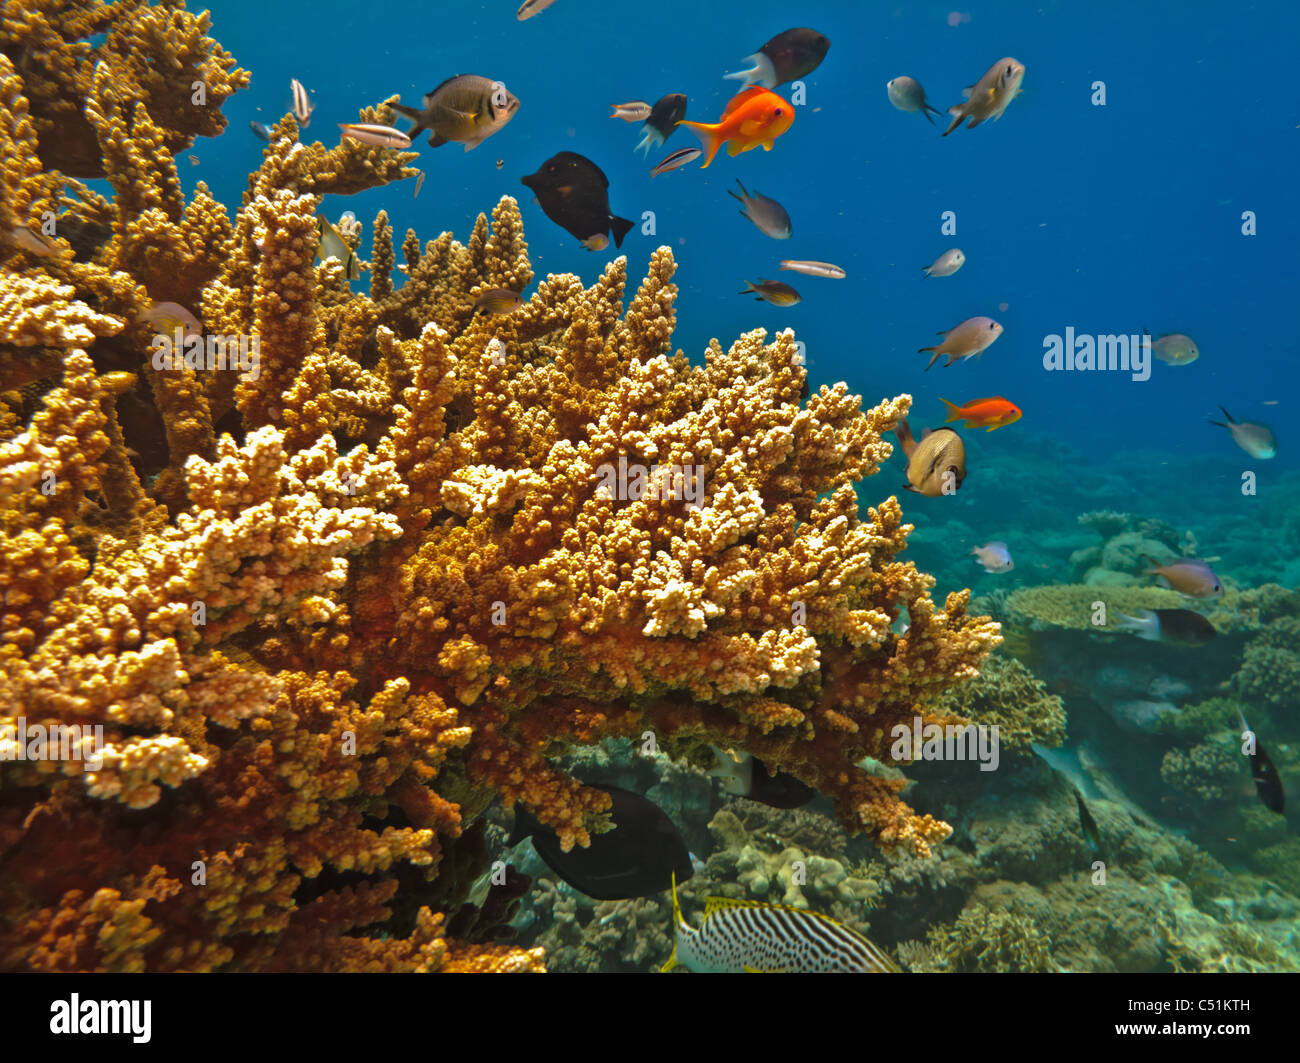 Stony Coral colonies and a variety of colorful fish on the Great Barrier Reef Australia - Stock Image